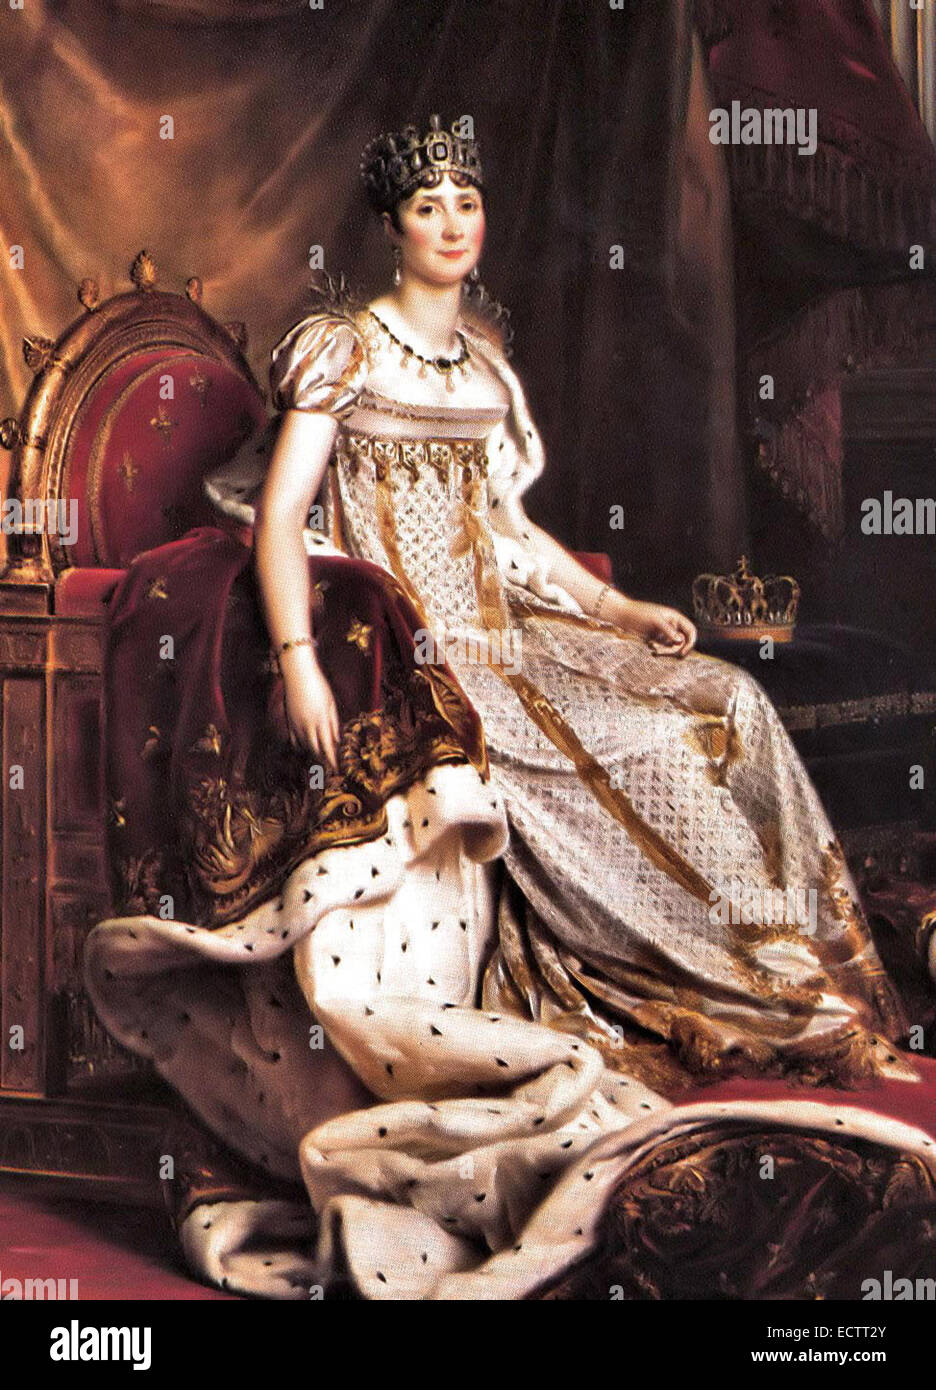 Joséphine de Beauharnais, first wife of Napoleon I, and thus the first Empress of the French. - Stock Image